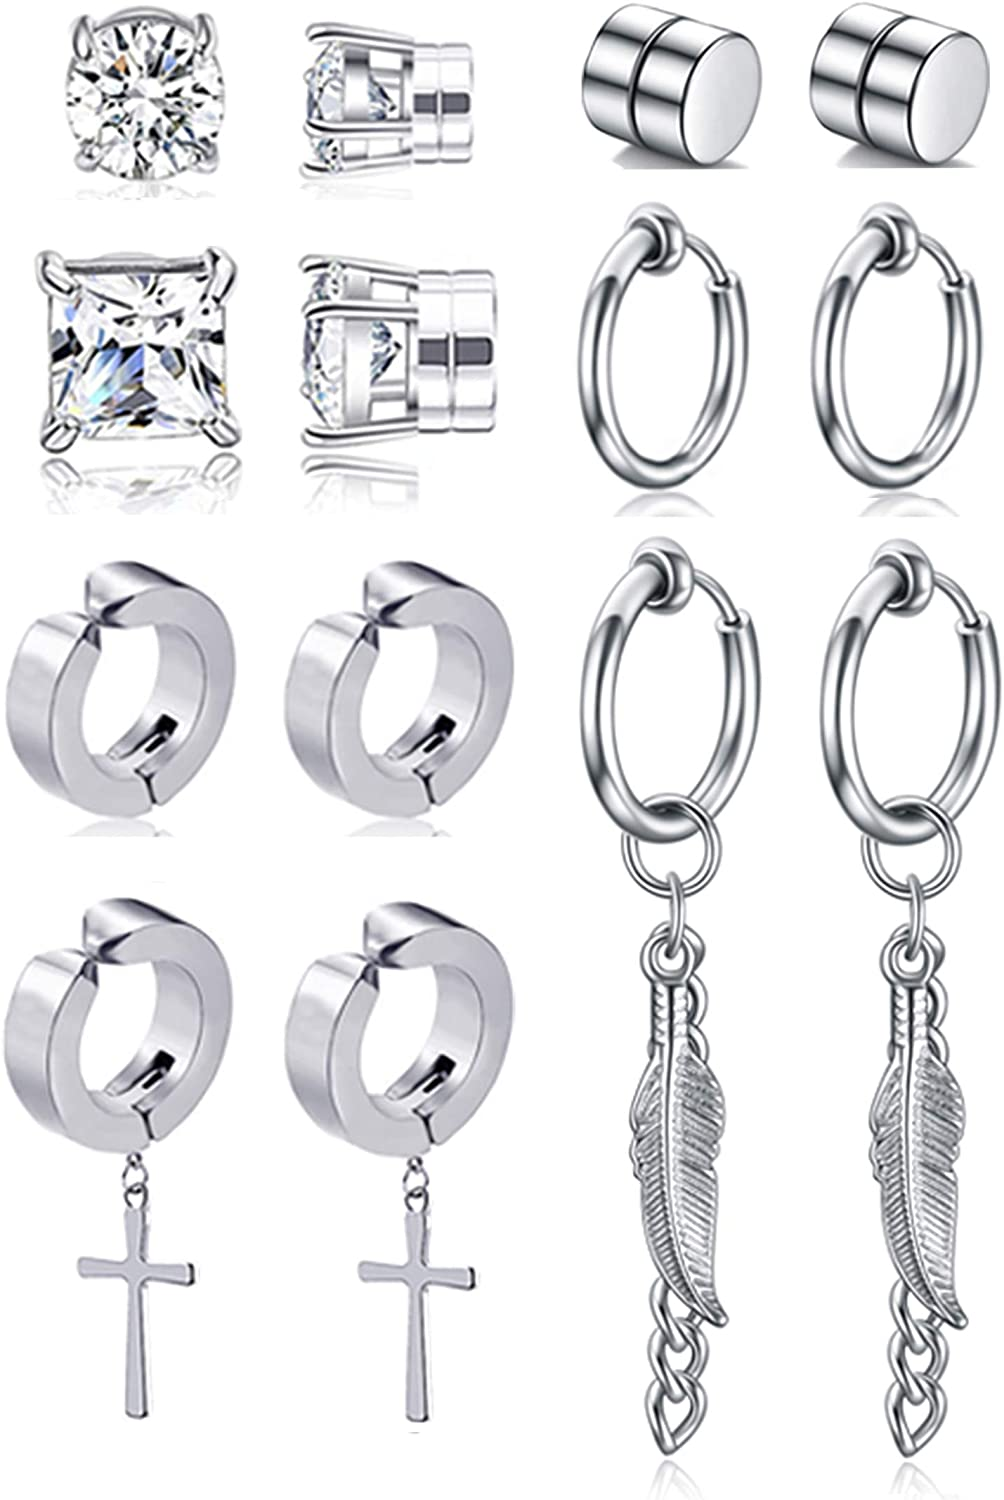 Ofeiyaa 7 Pairs Magnetic Stud Earring Stainless Steel CZ Clip On Earring Non- Piercing Huggie Cross Chain Pendant Earring Feather Hinged Hoop Earrings Set For Momen Men Black Silver Tone.